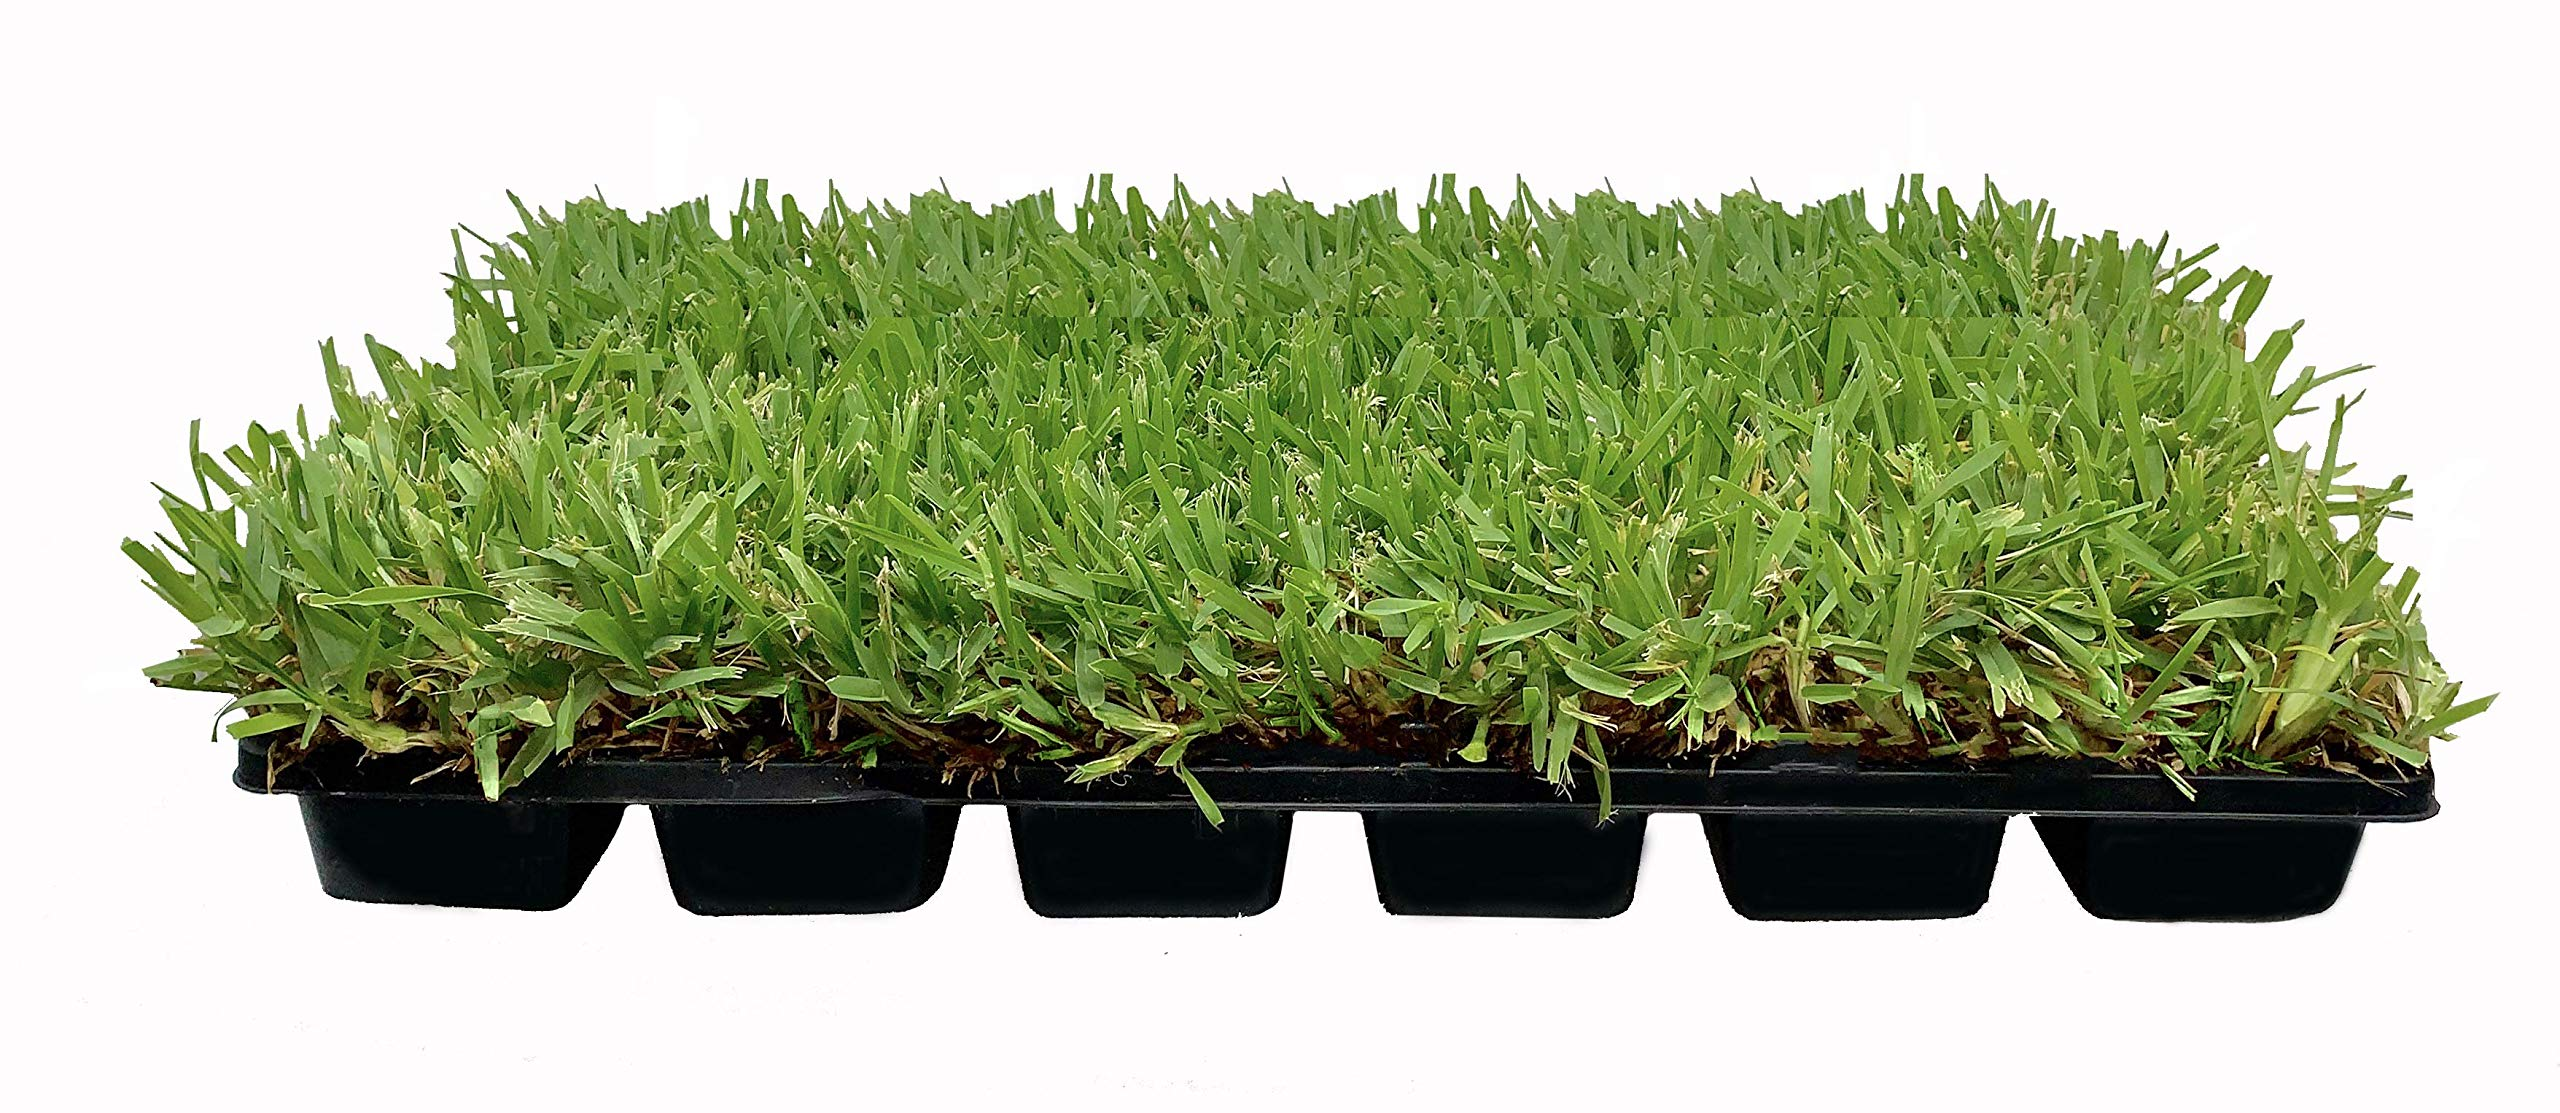 St. Augustine 'Palmetto' 3 Inch Sod Plugs - 18 Plugs - Drought, Salt, Shade, Cold, Heat & Frost Tolerant Turf Grass